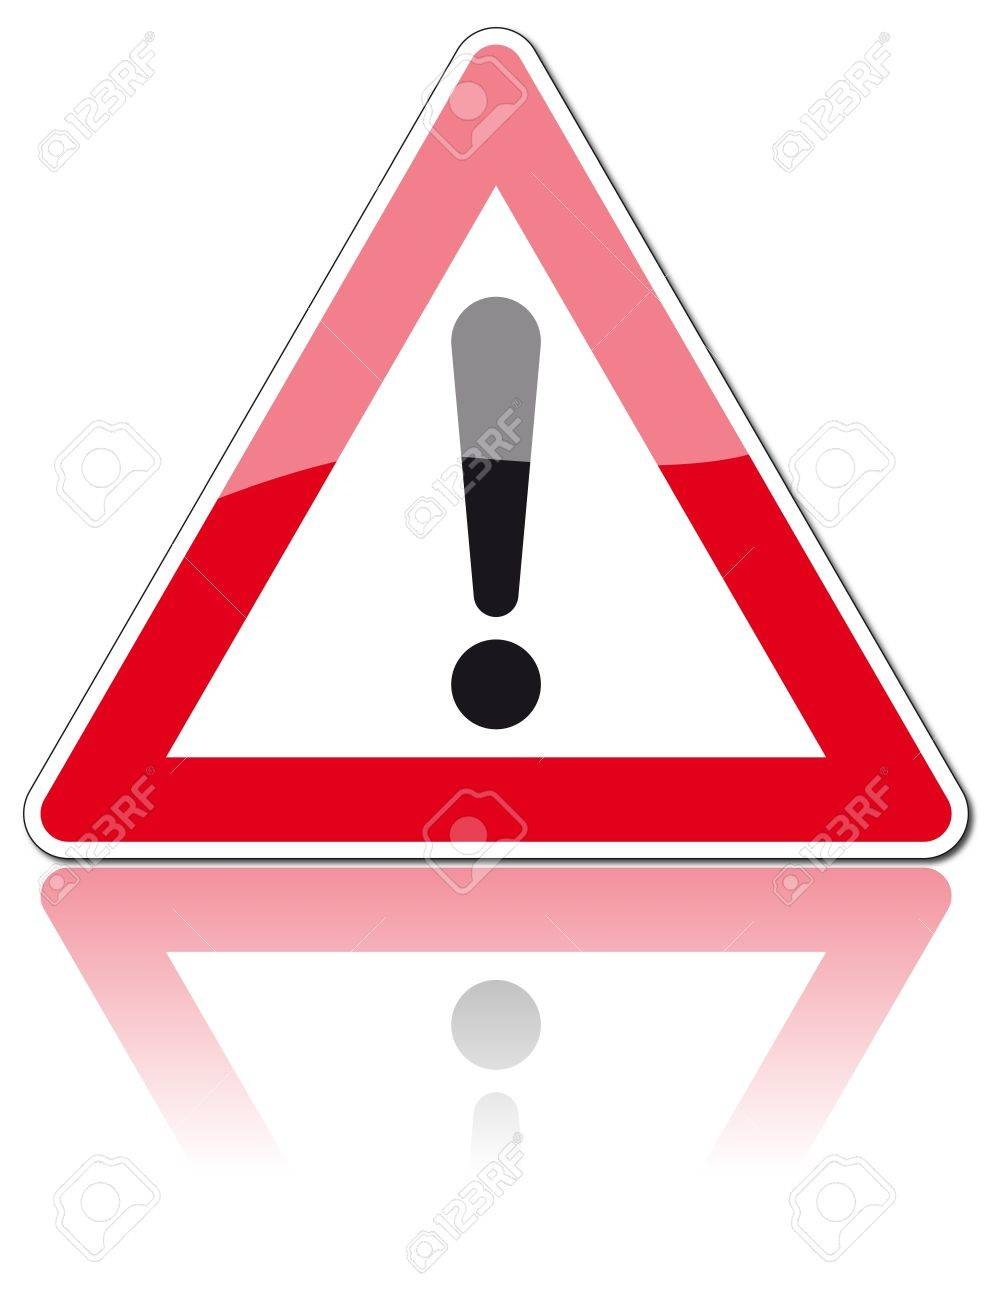 road sign Stock Photo - 9975136